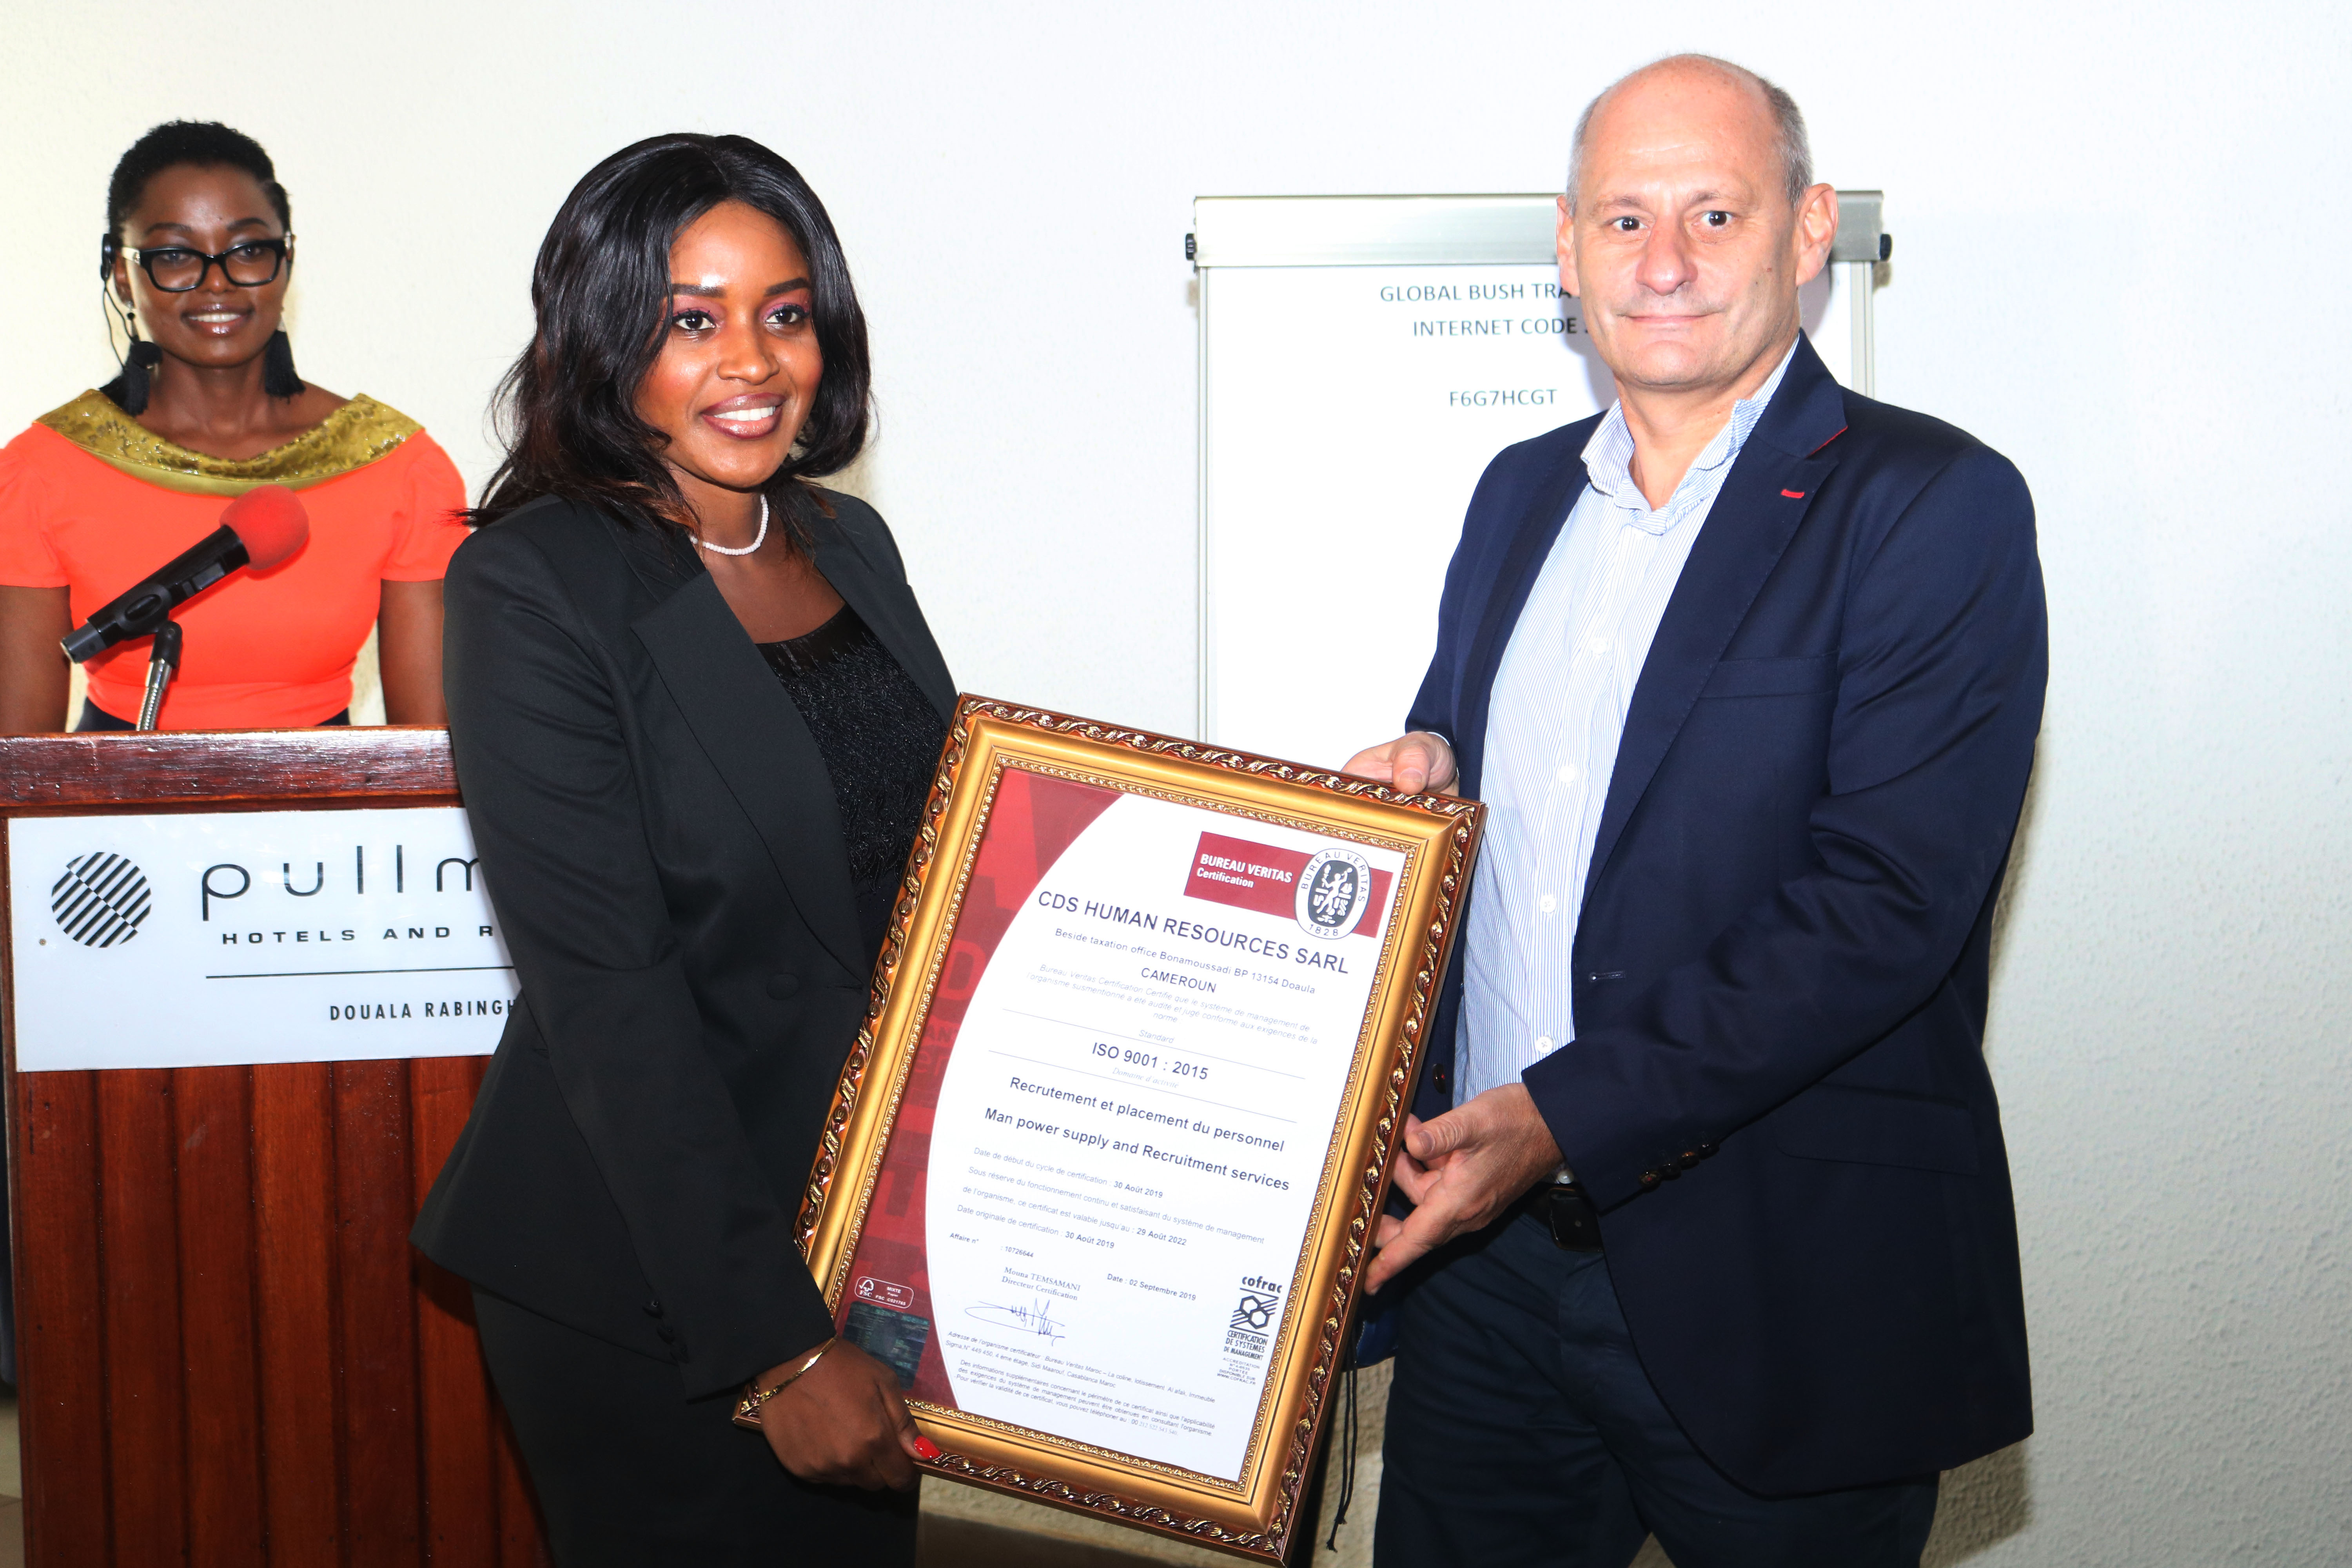 Conformity With International Standards Cdshr Ltd Becomes Lone Iso 9001 2015 Certified Human Resource Company In Cameroon Journal Du Cameroun